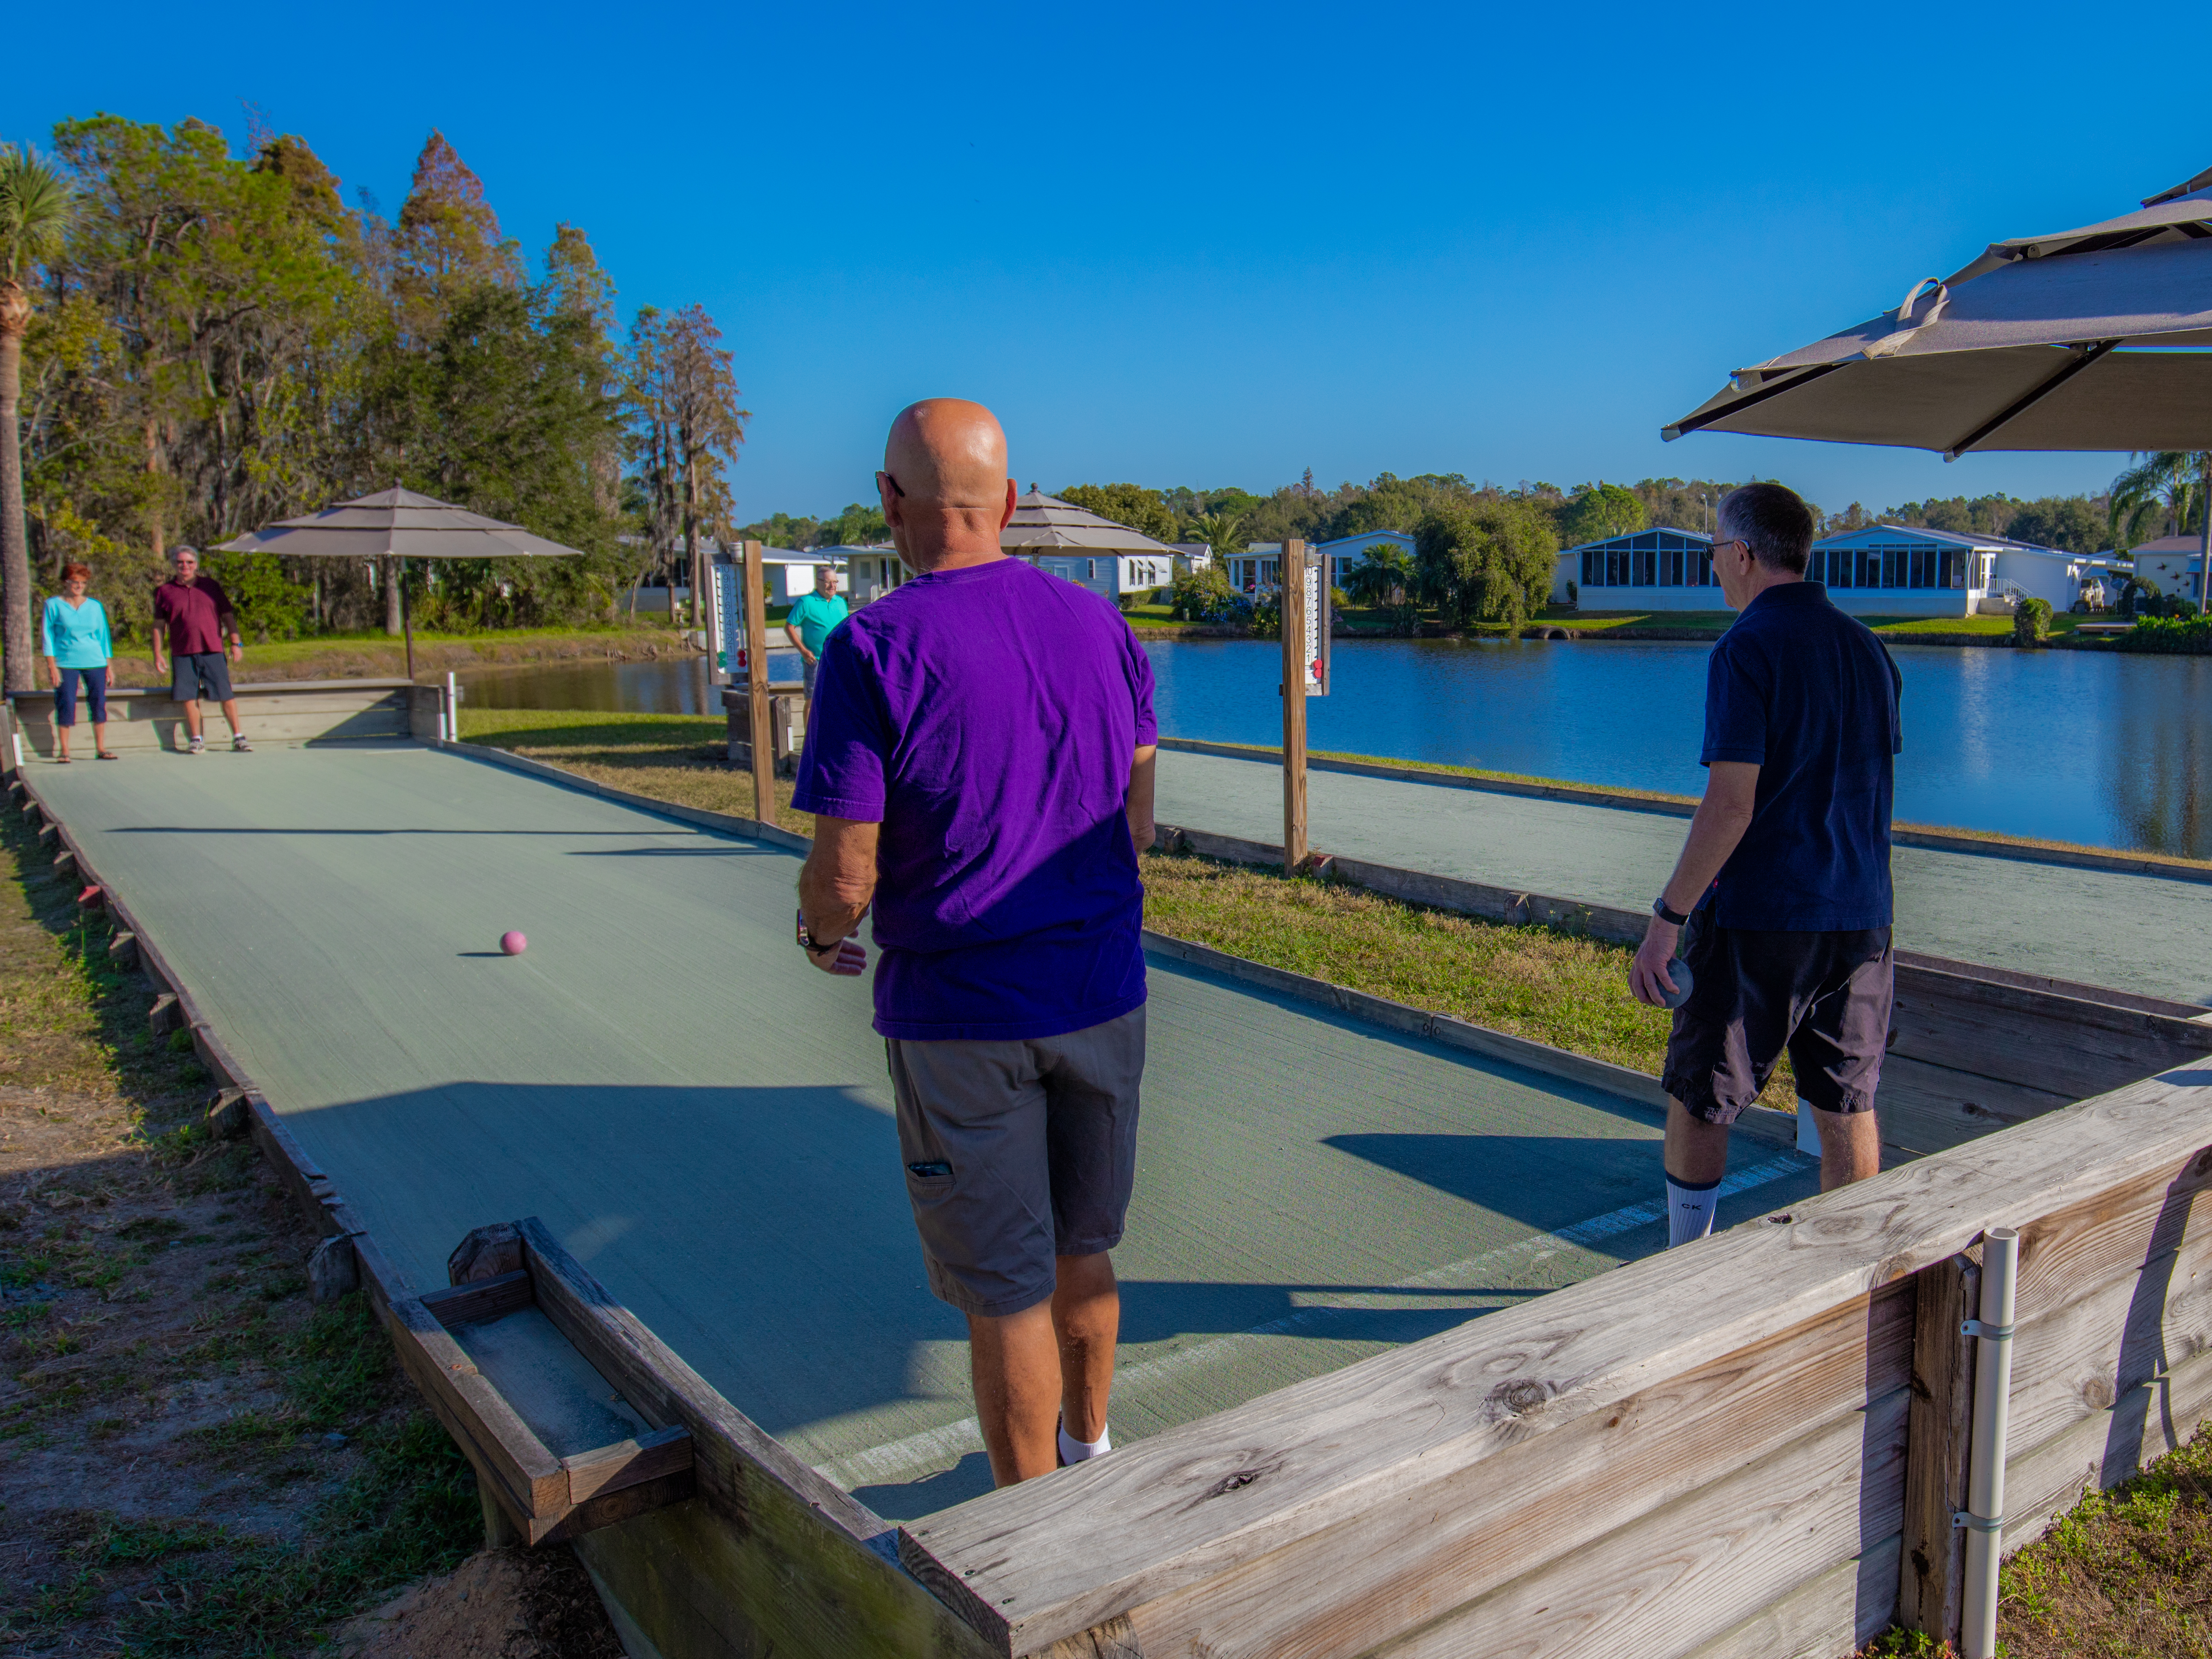 Two older men with backs to camera watch as their bocce balls roll down the court to a couple on the other end; there's a lake surrounded by manufactured homes in the background.